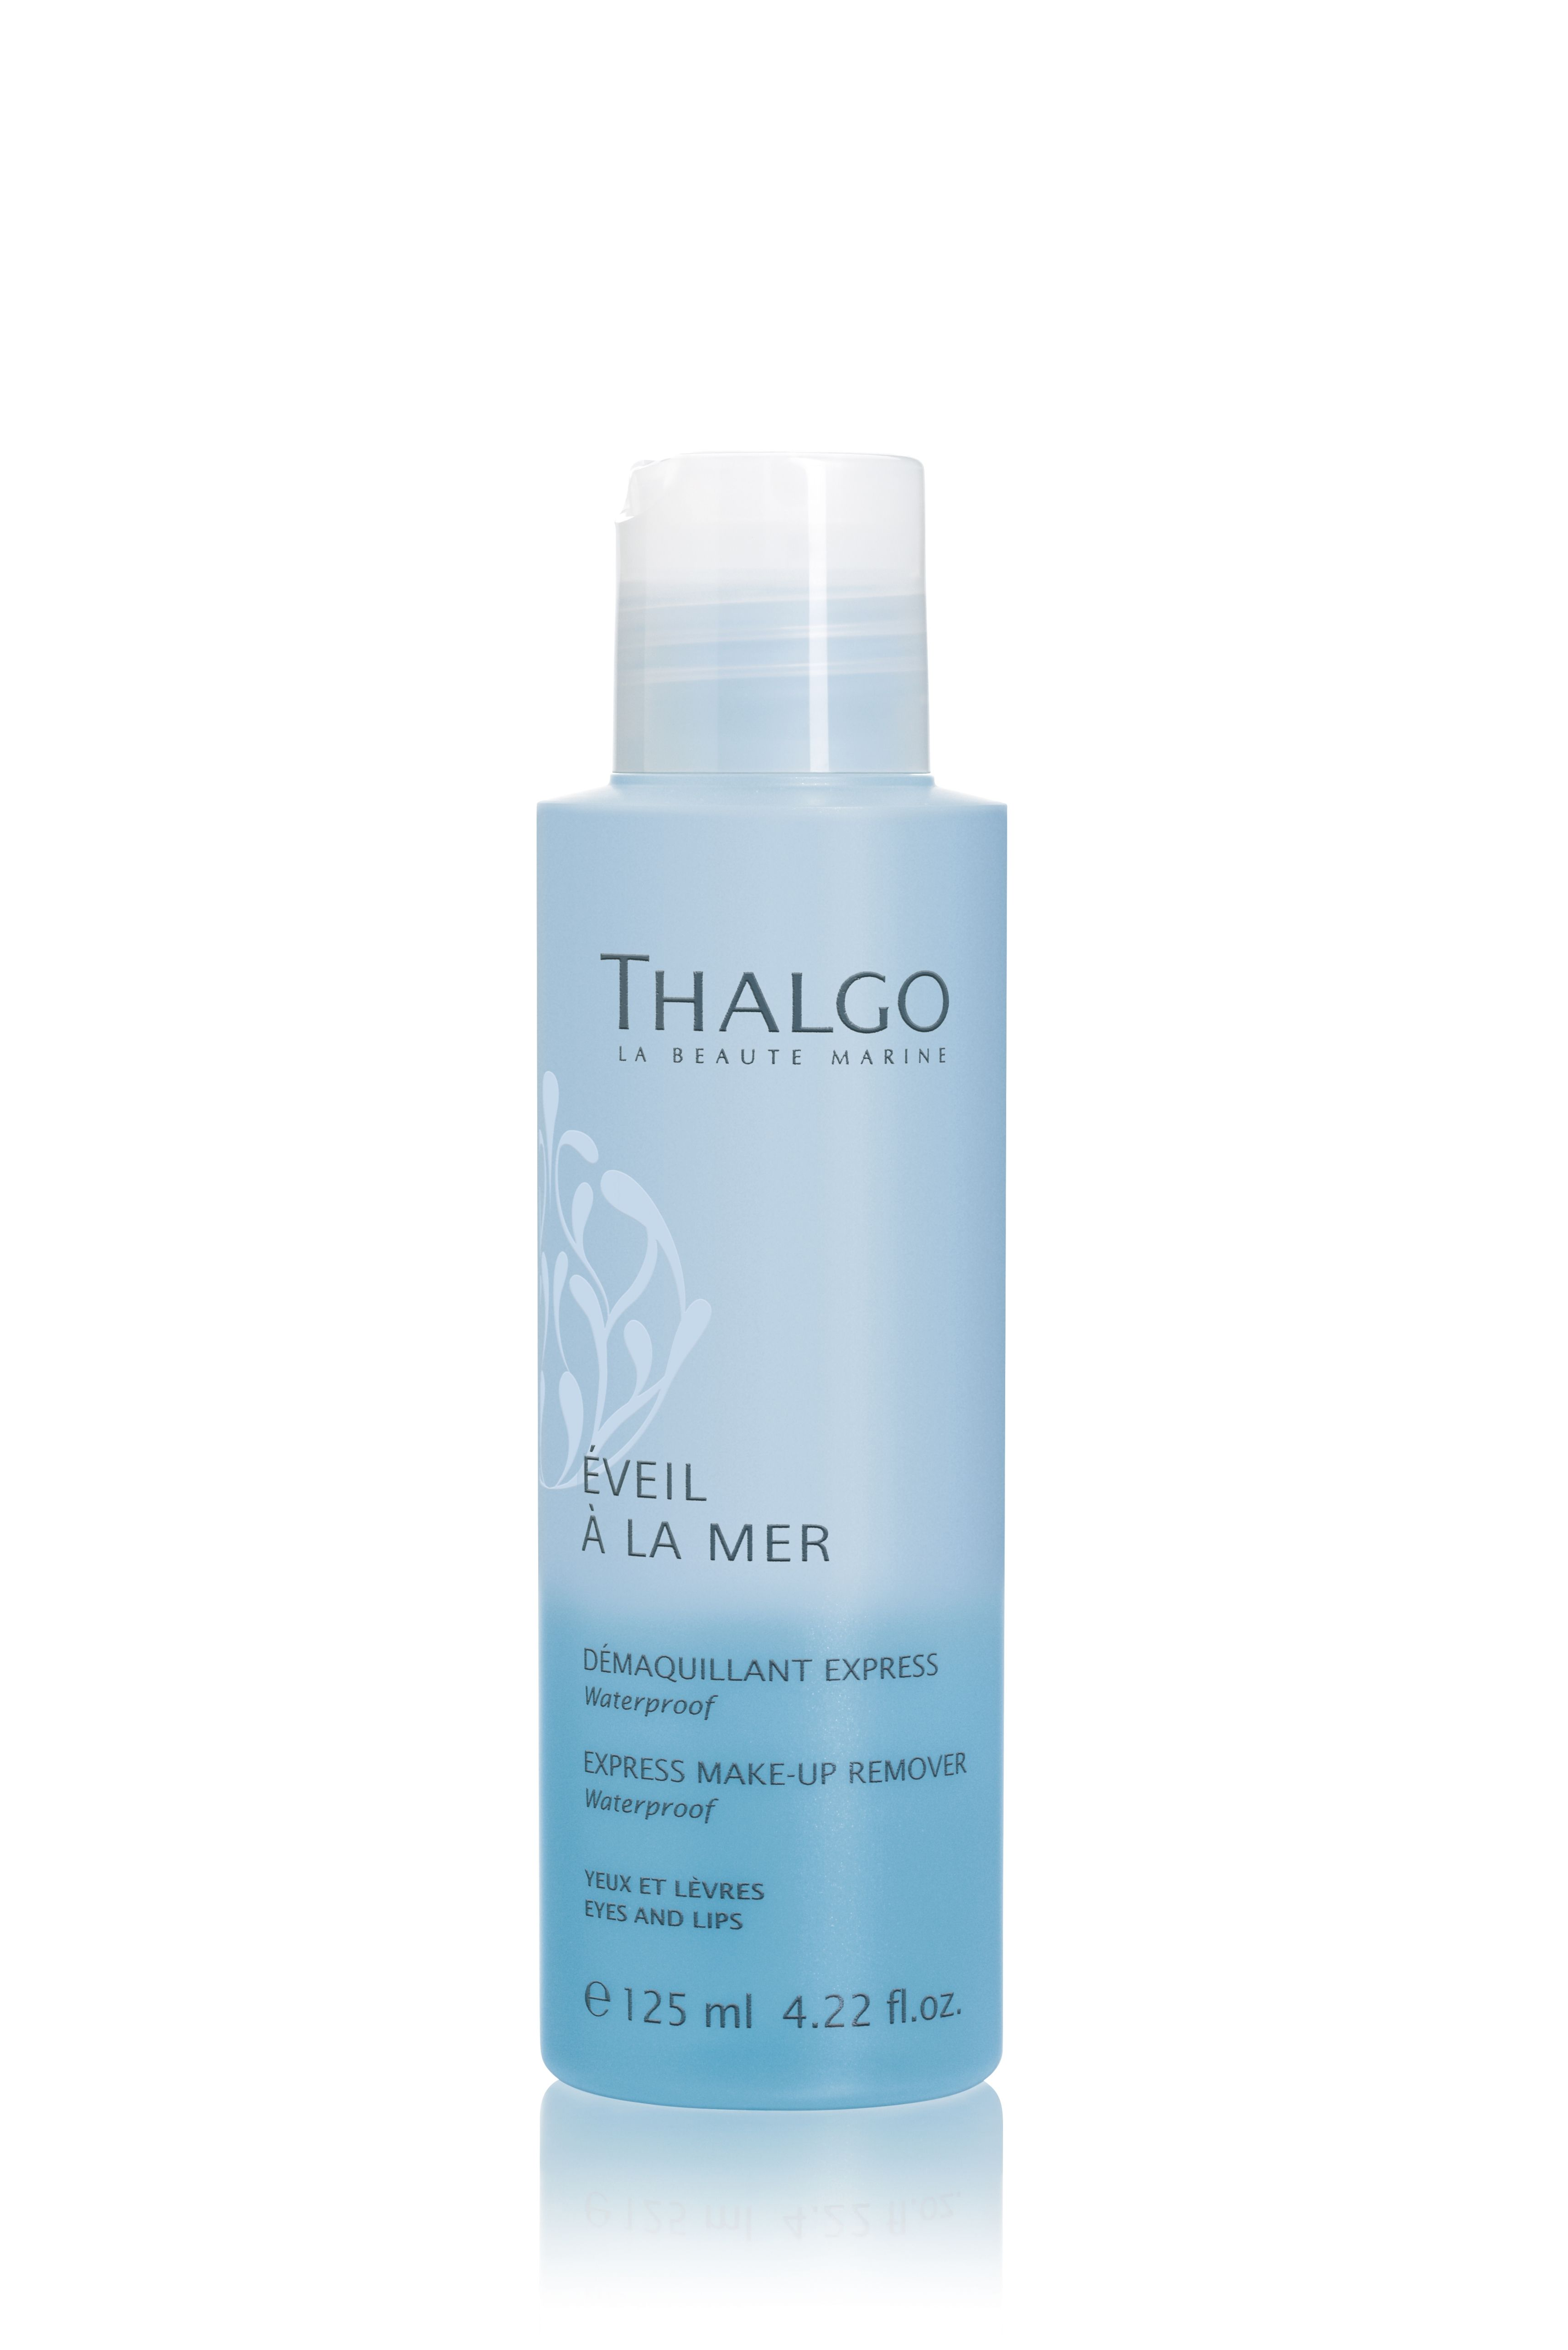 Thalgo Express MakeUp Remover works on all eye and lip